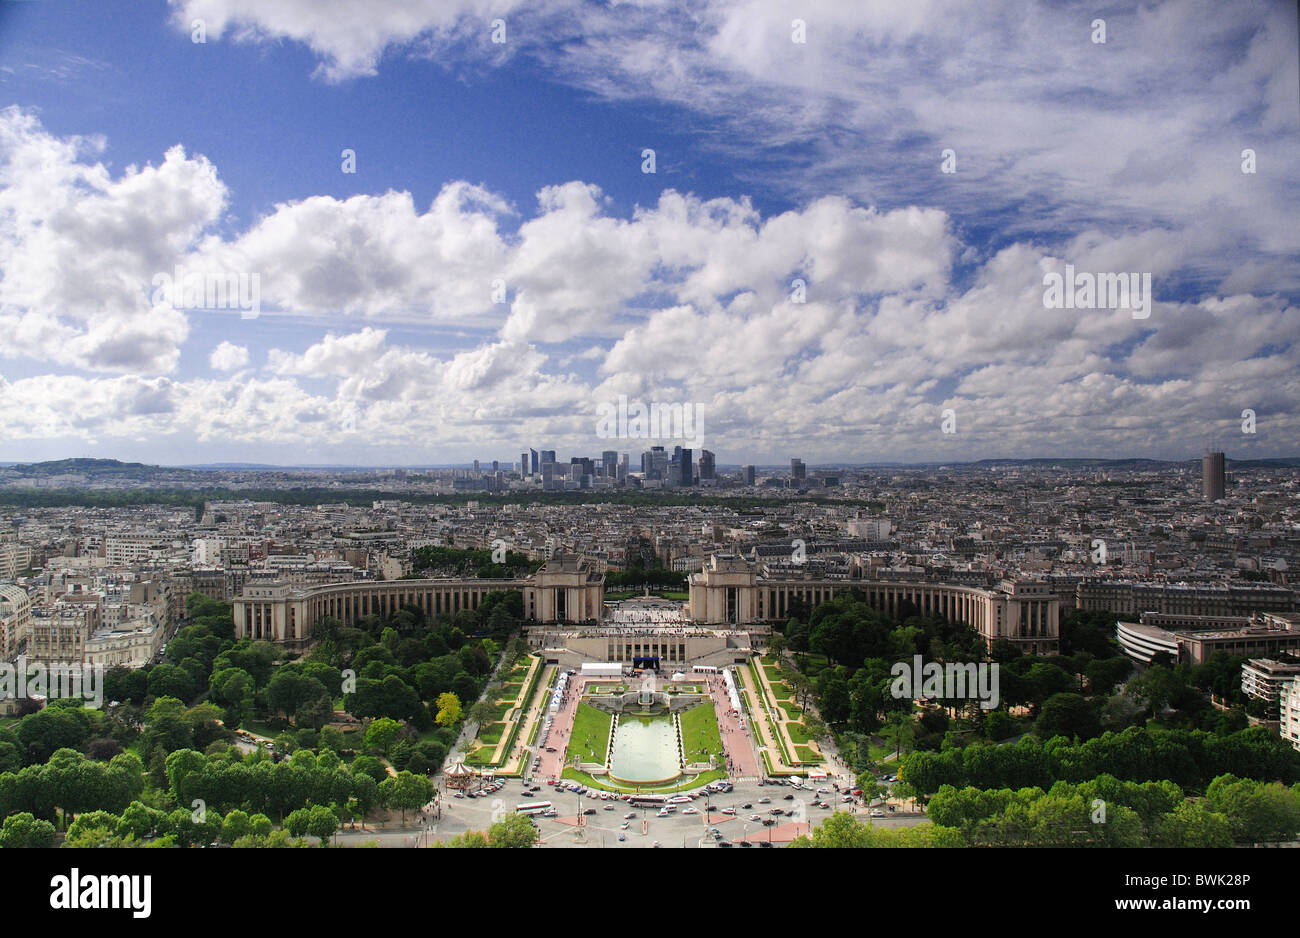 North West view over Paris From Eiffel Tower showing, Palais de Chhaillot, Jardins du Trocadero and La Defense in Stock Photo